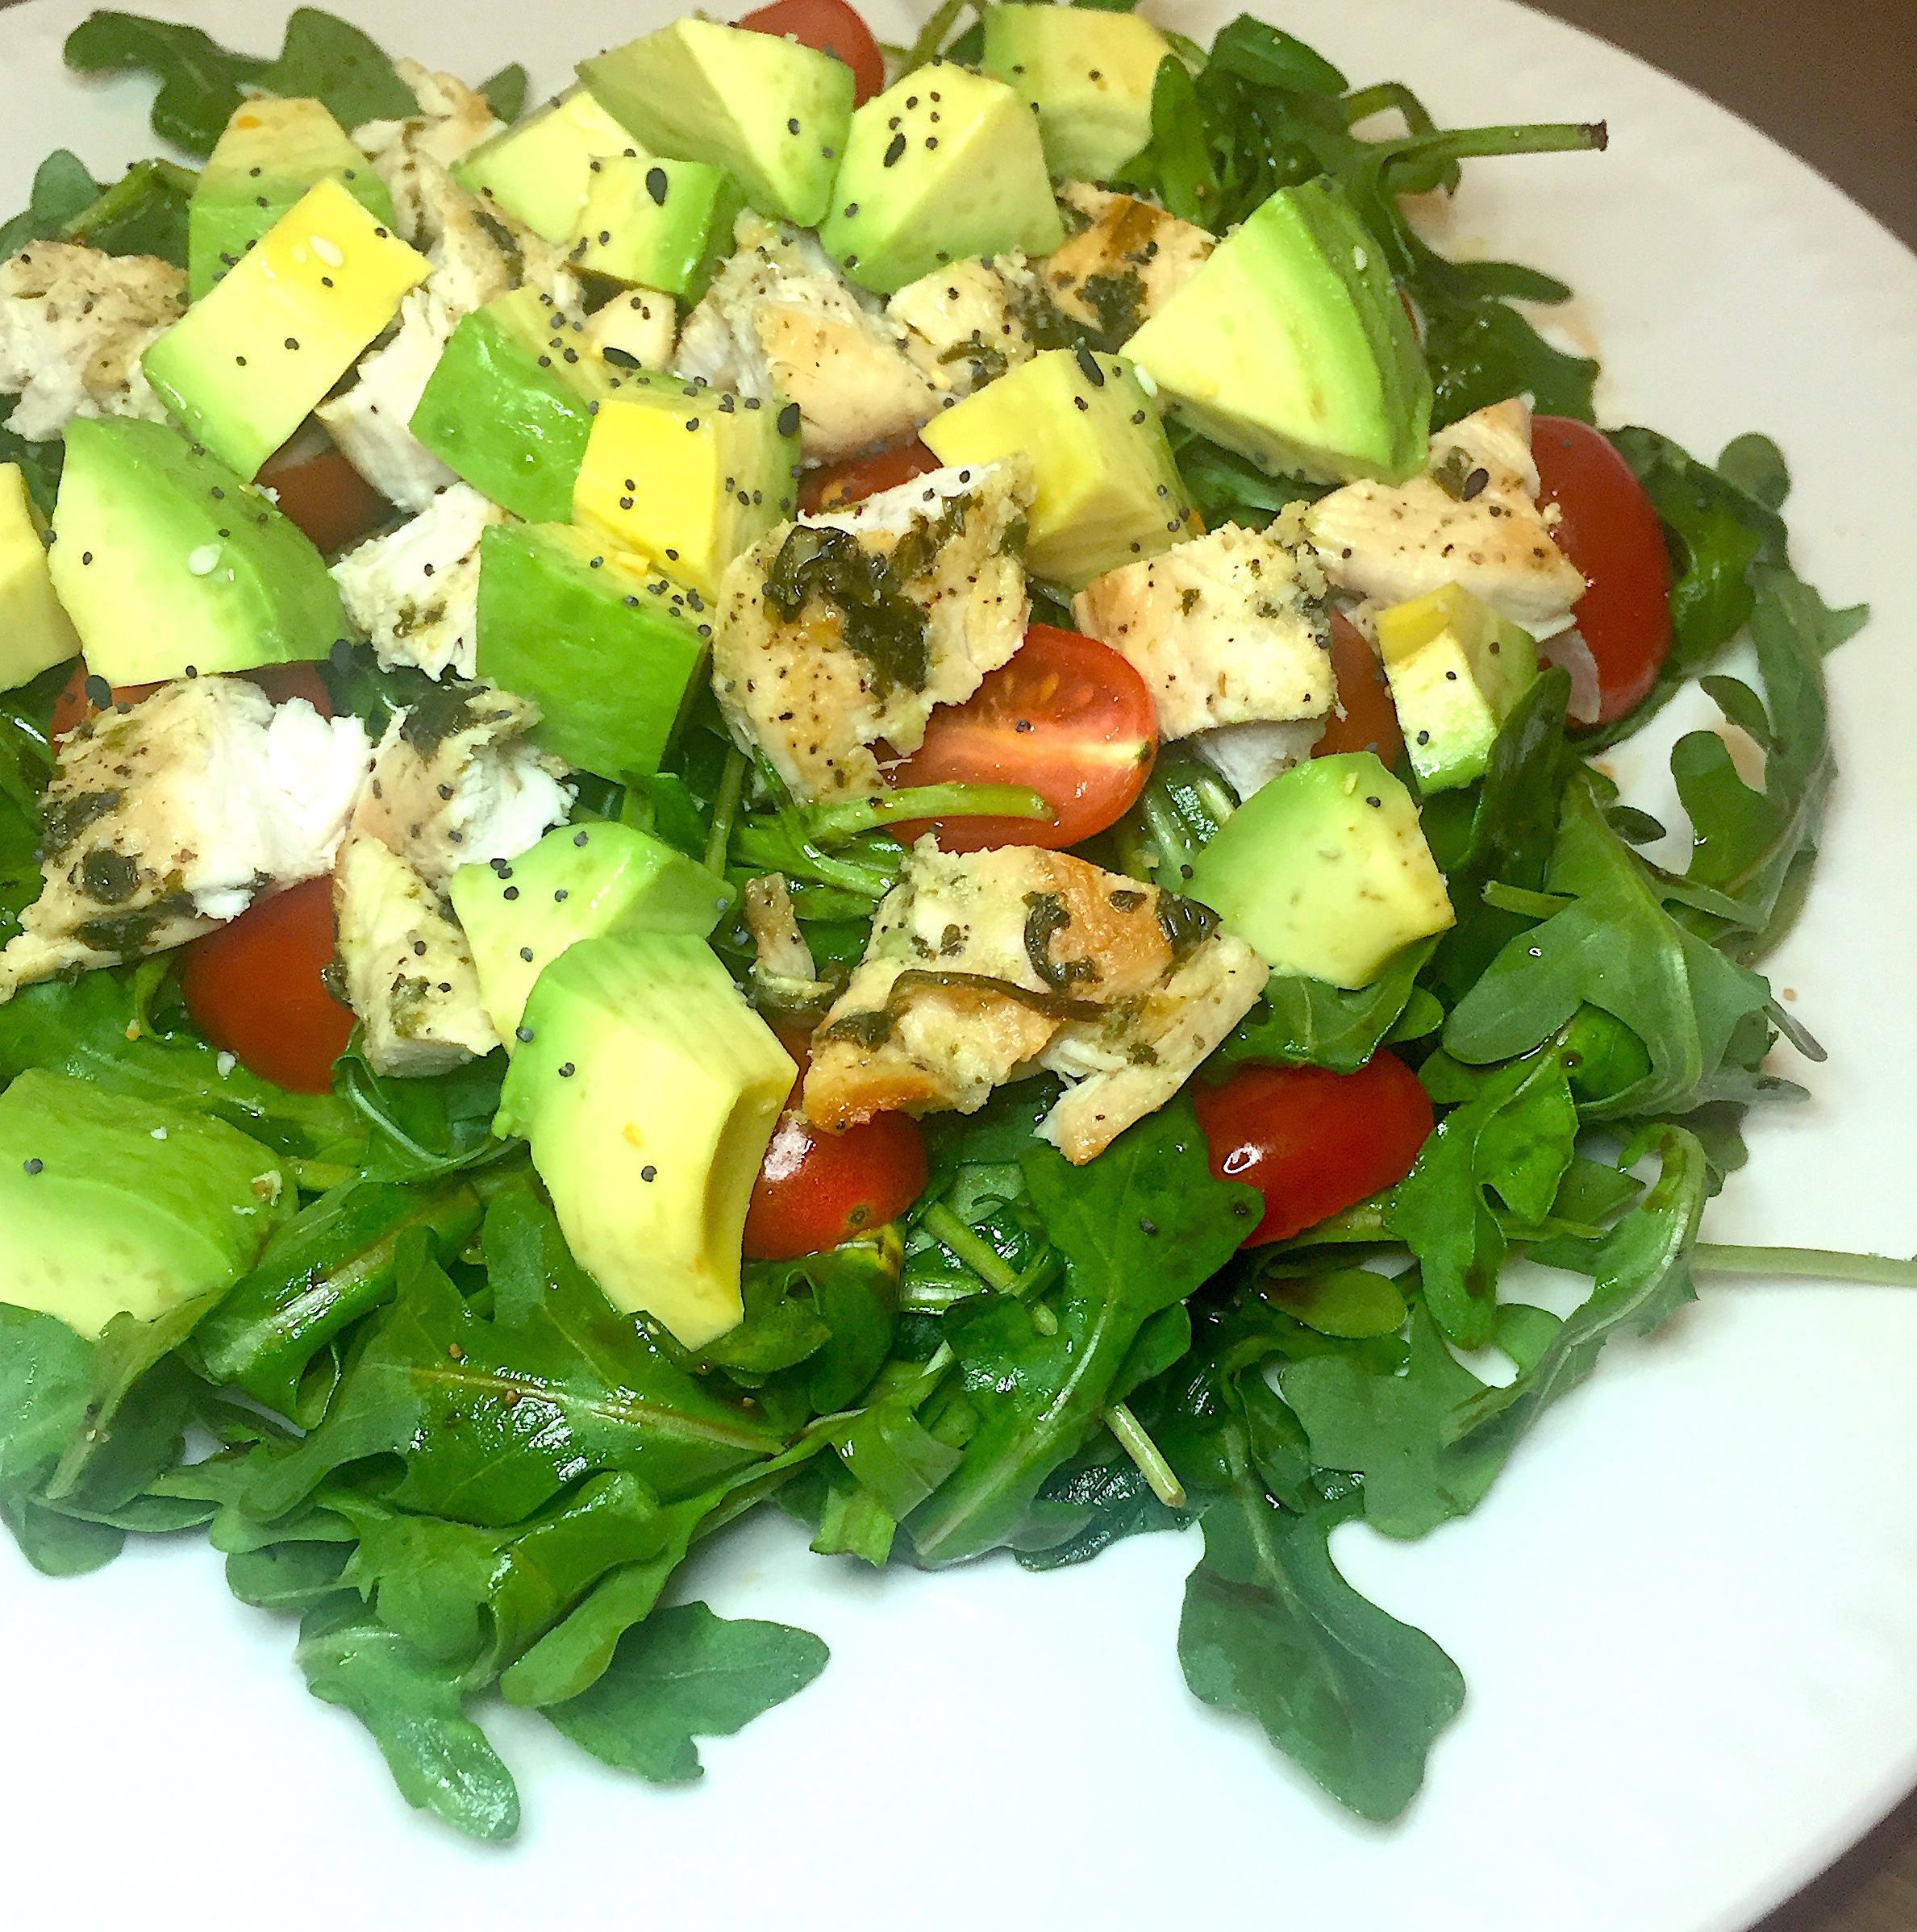 AAYNutrition_Cilantro Lime Chicken Salad.JPG